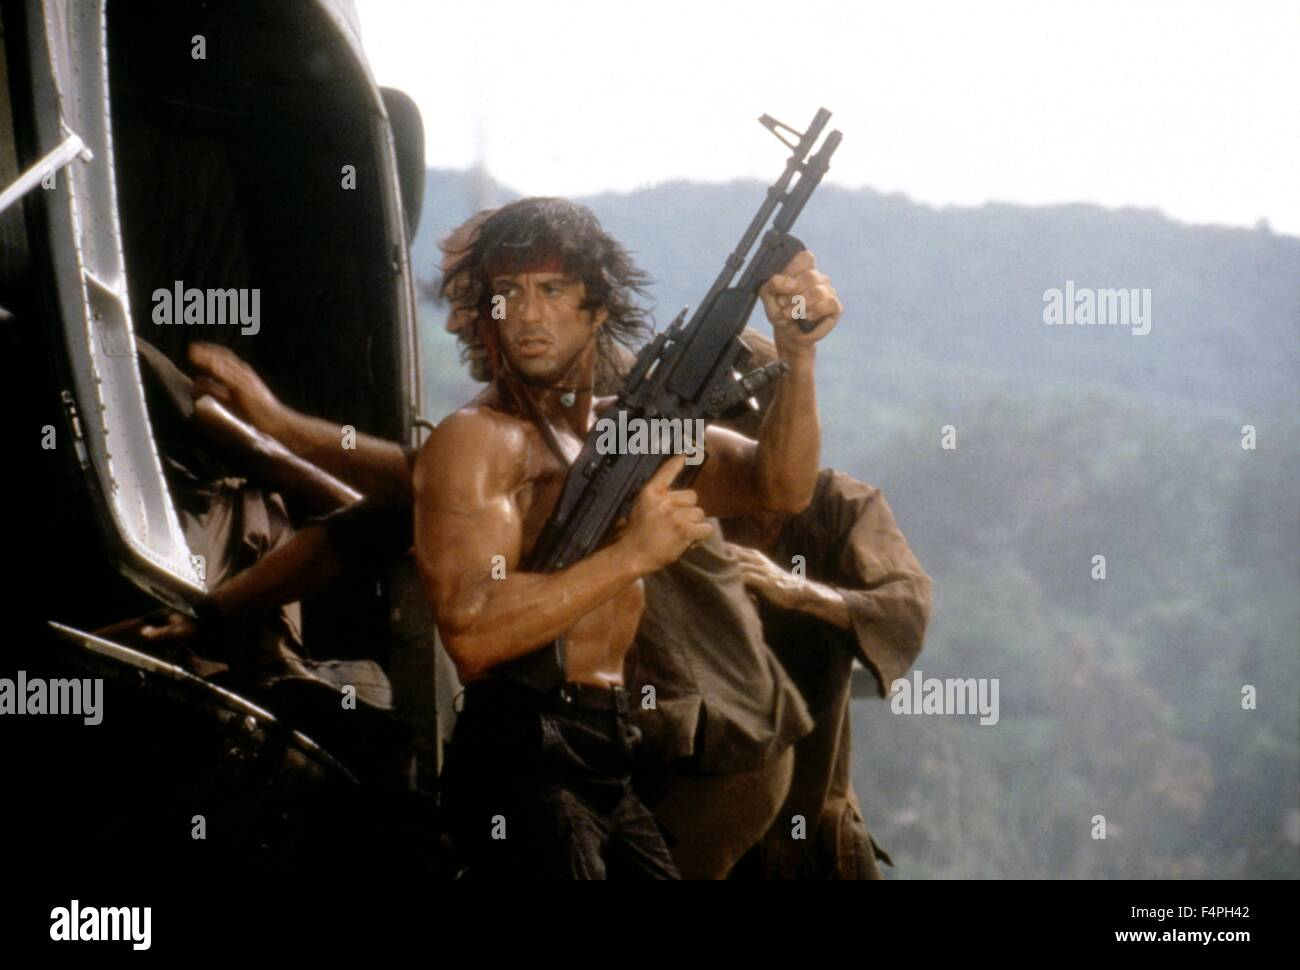 Sylvester Stallone / Rambo: First Blood Part II / 1985 directed by George P. Cosmatos - Stock Image